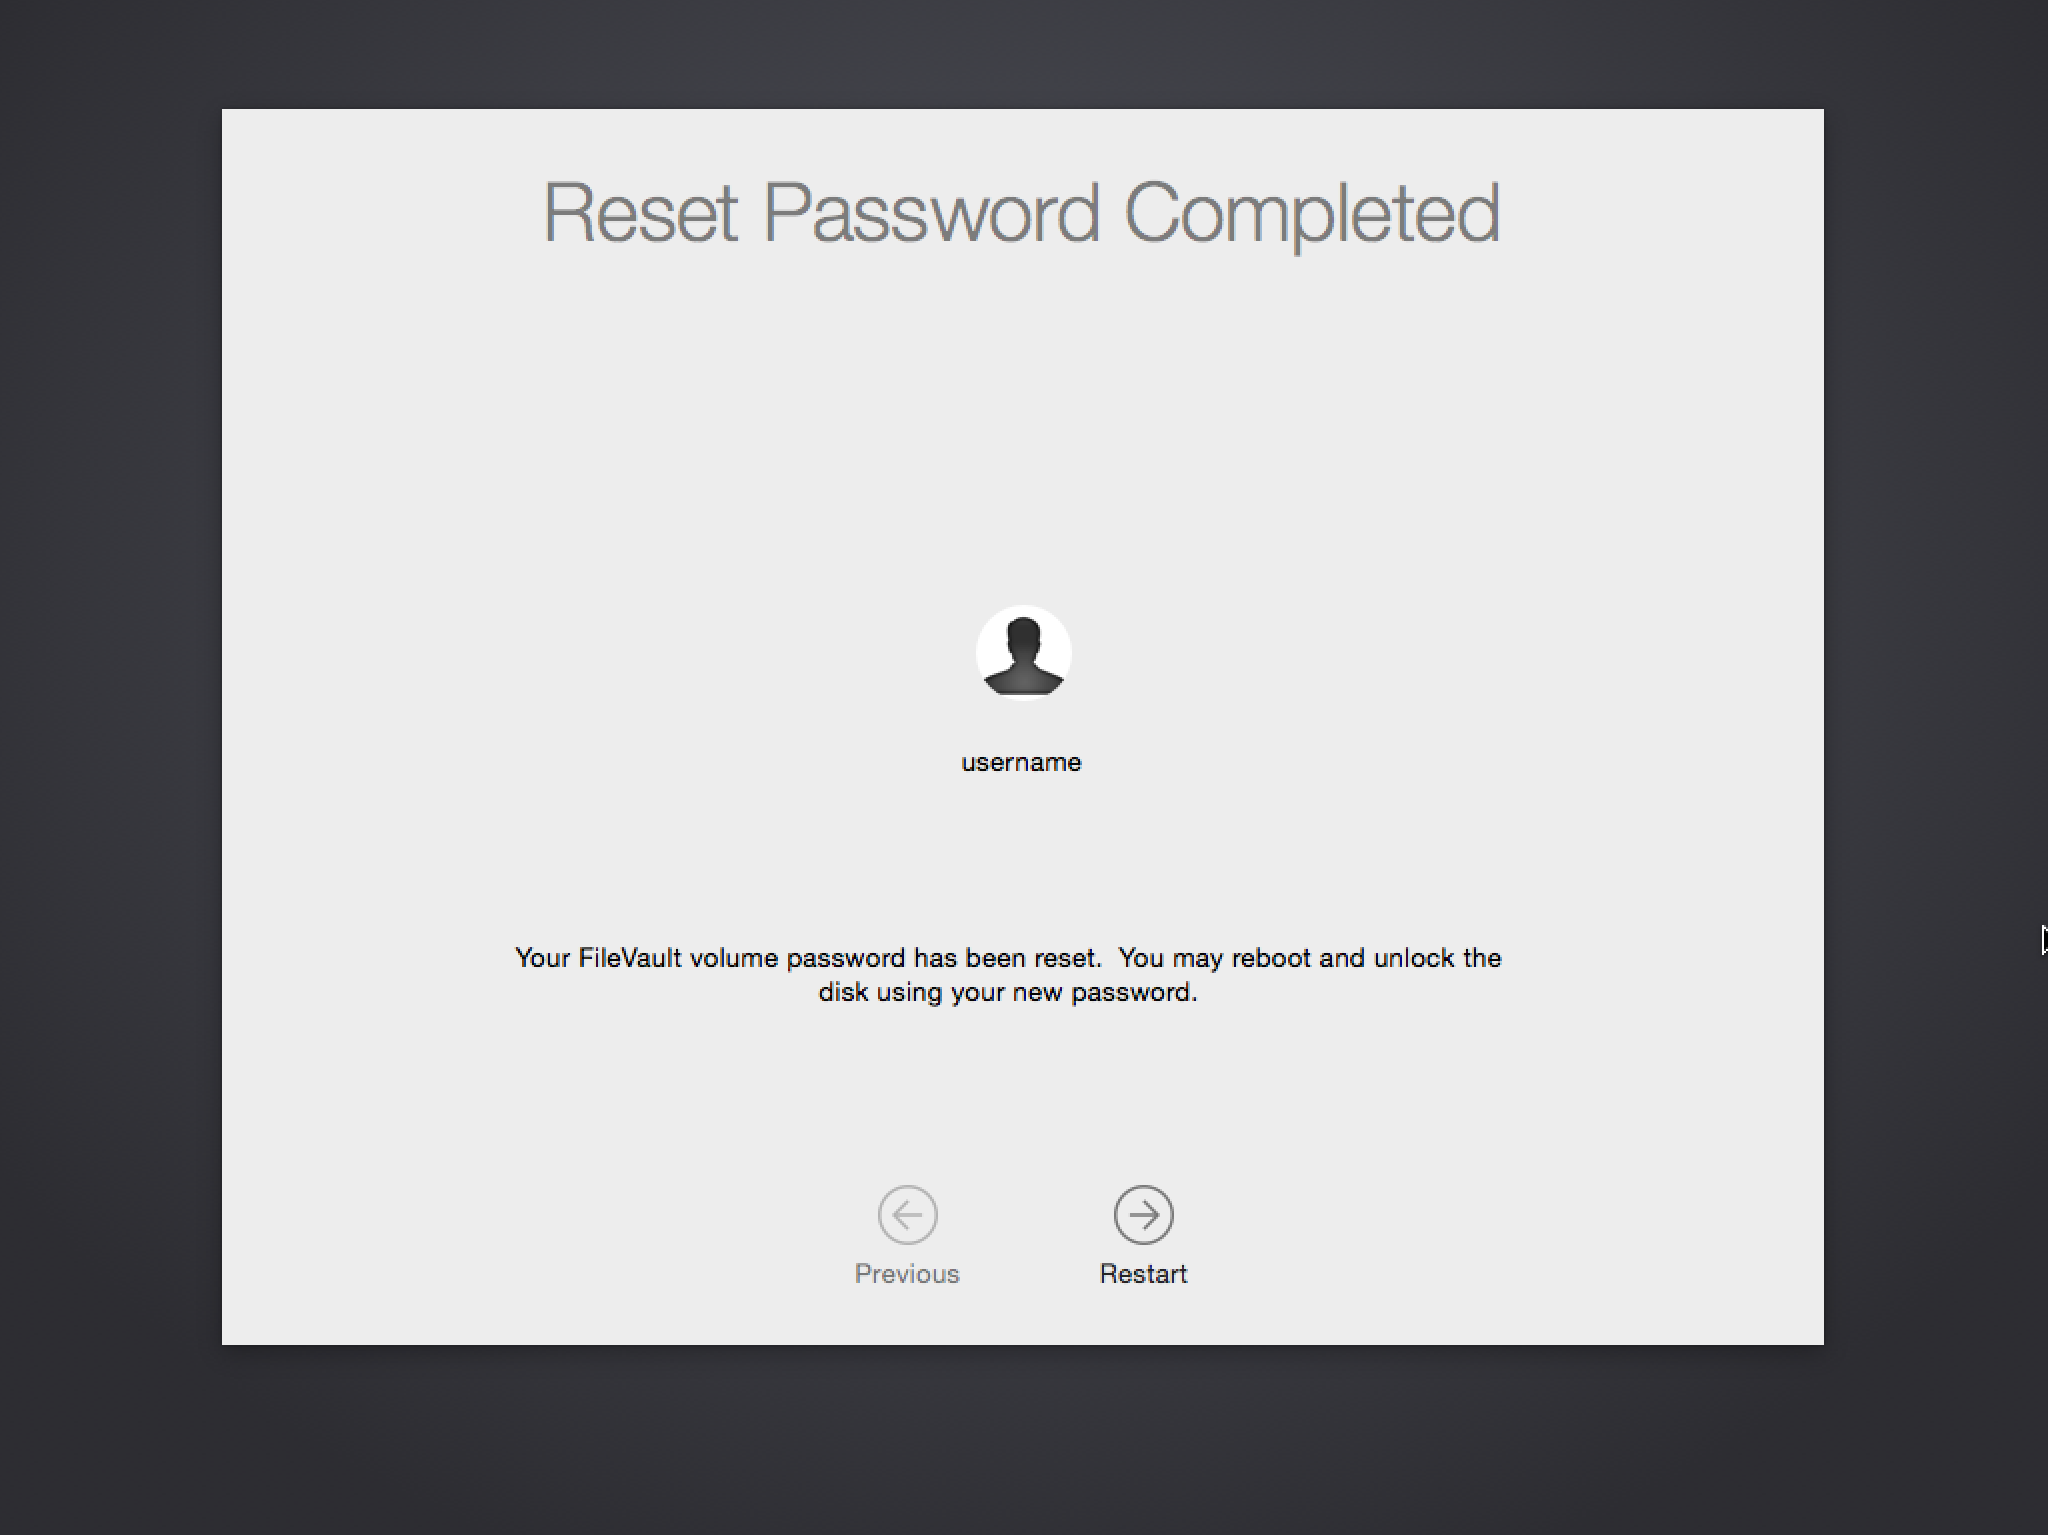 Yosemite's FileVault 2 pre-boot recovery options | Der Flounder